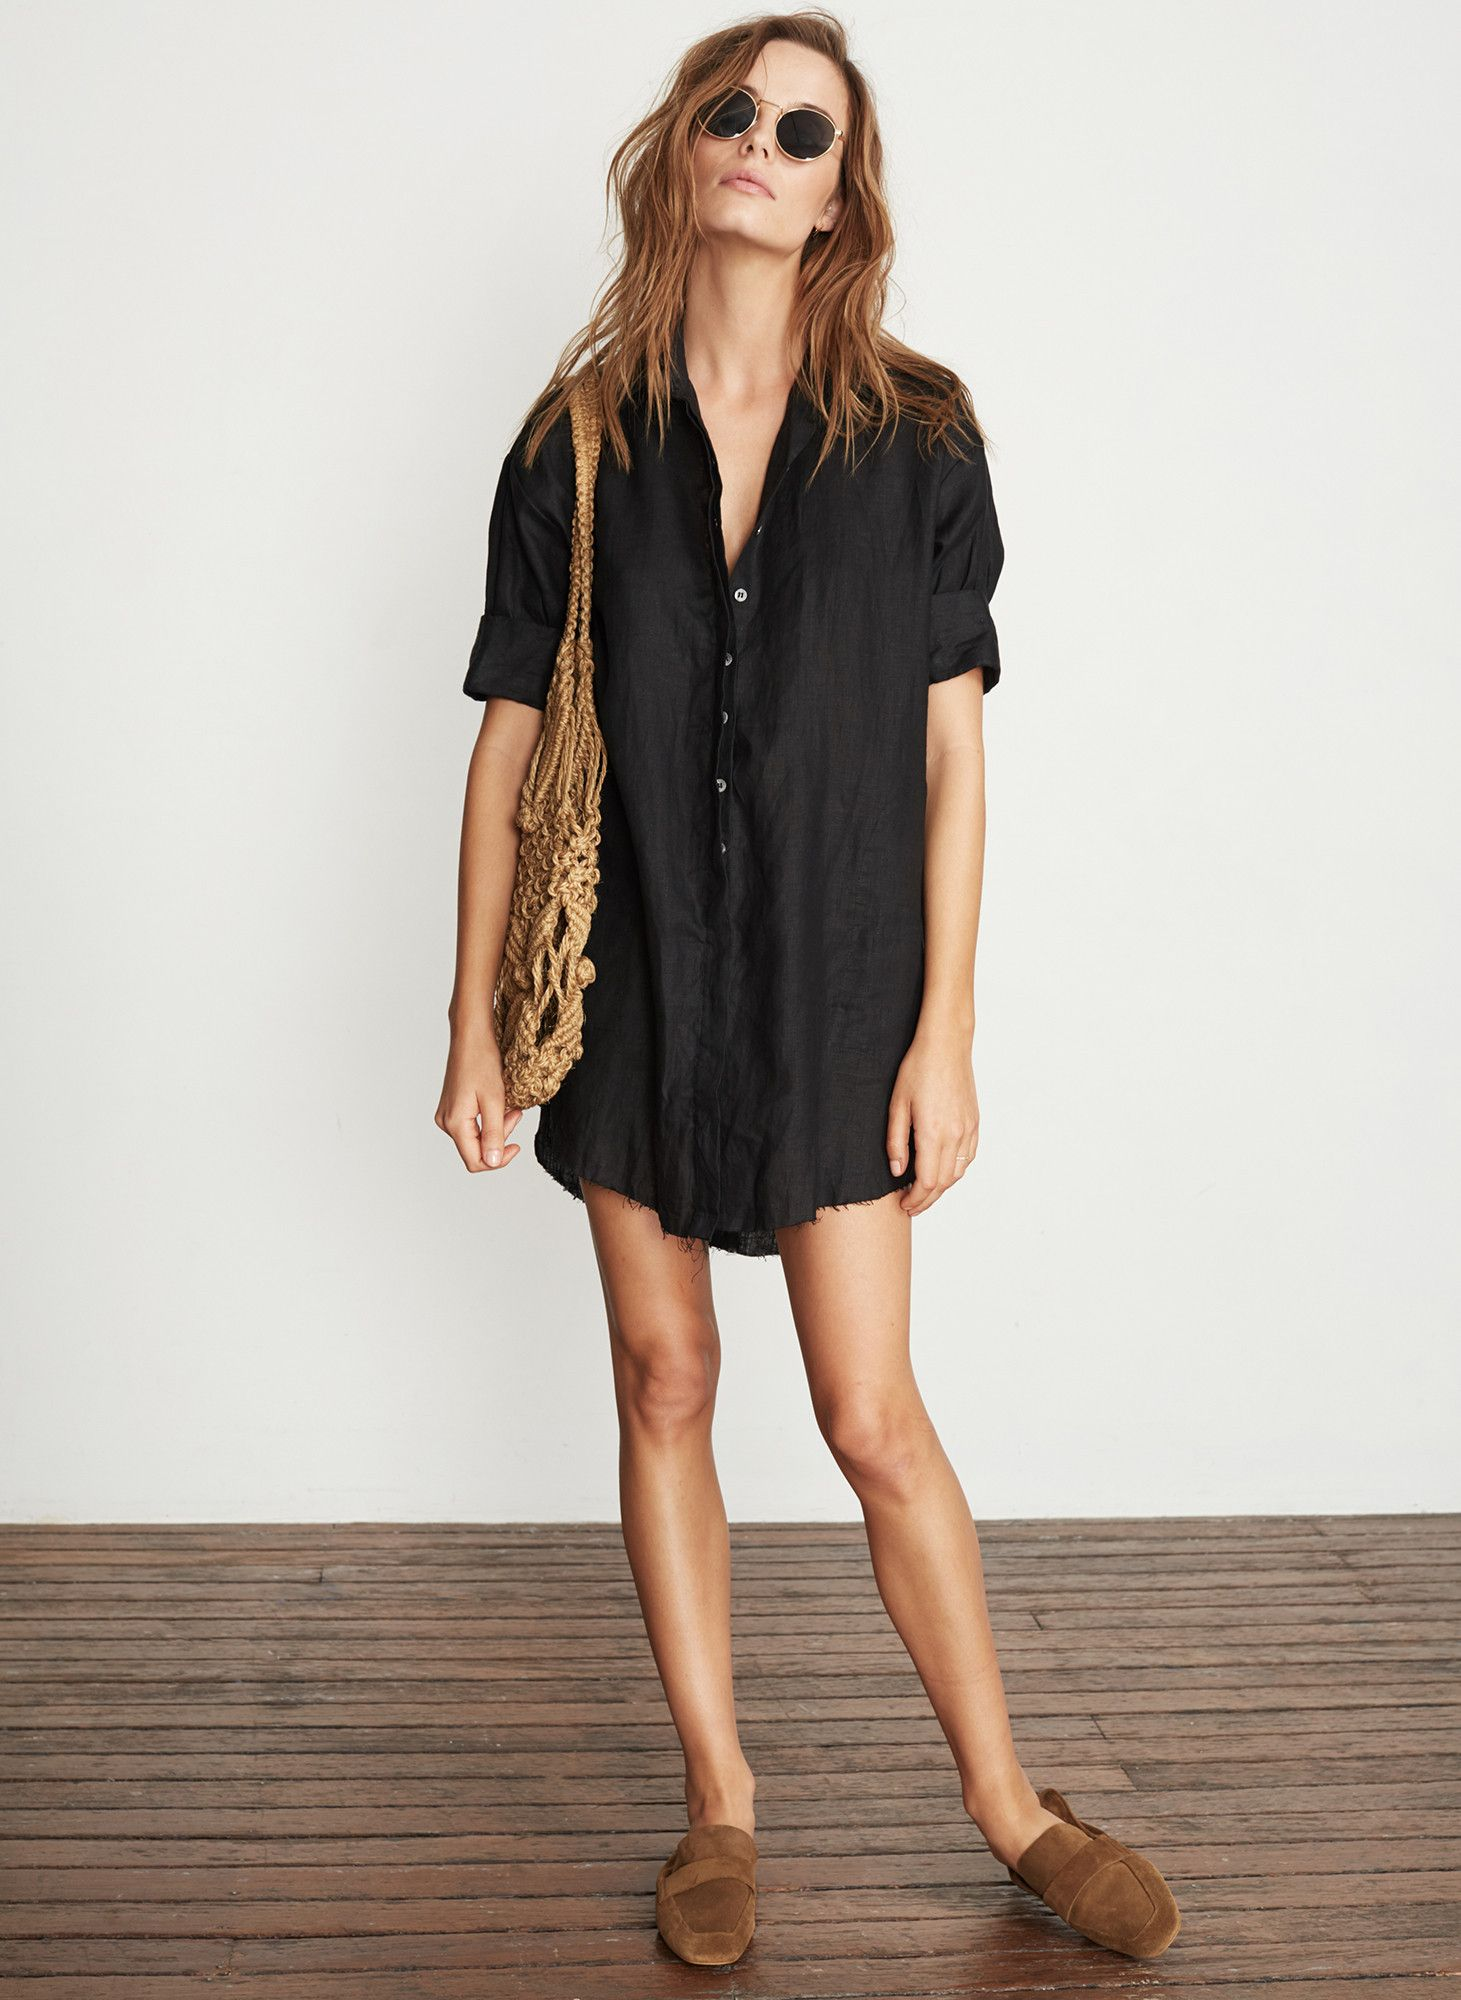 PLAIN BLACK LINEN - TESTONI SHIRT DRESS